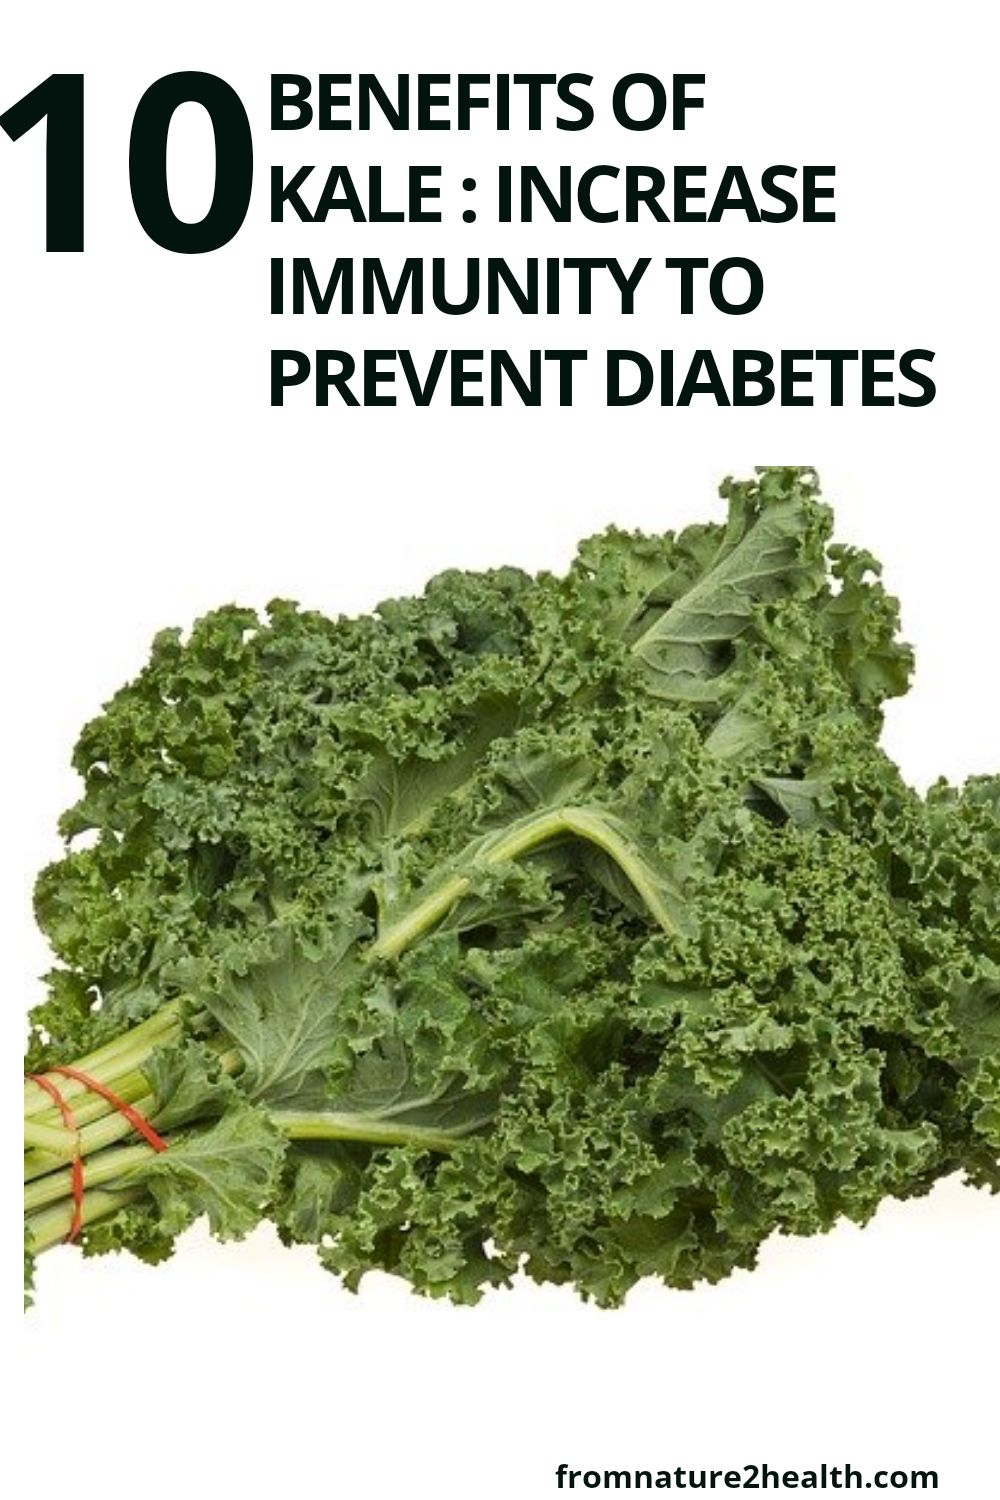 10 Benefits of Kale : Increase Immunity to Prevent Diabetes